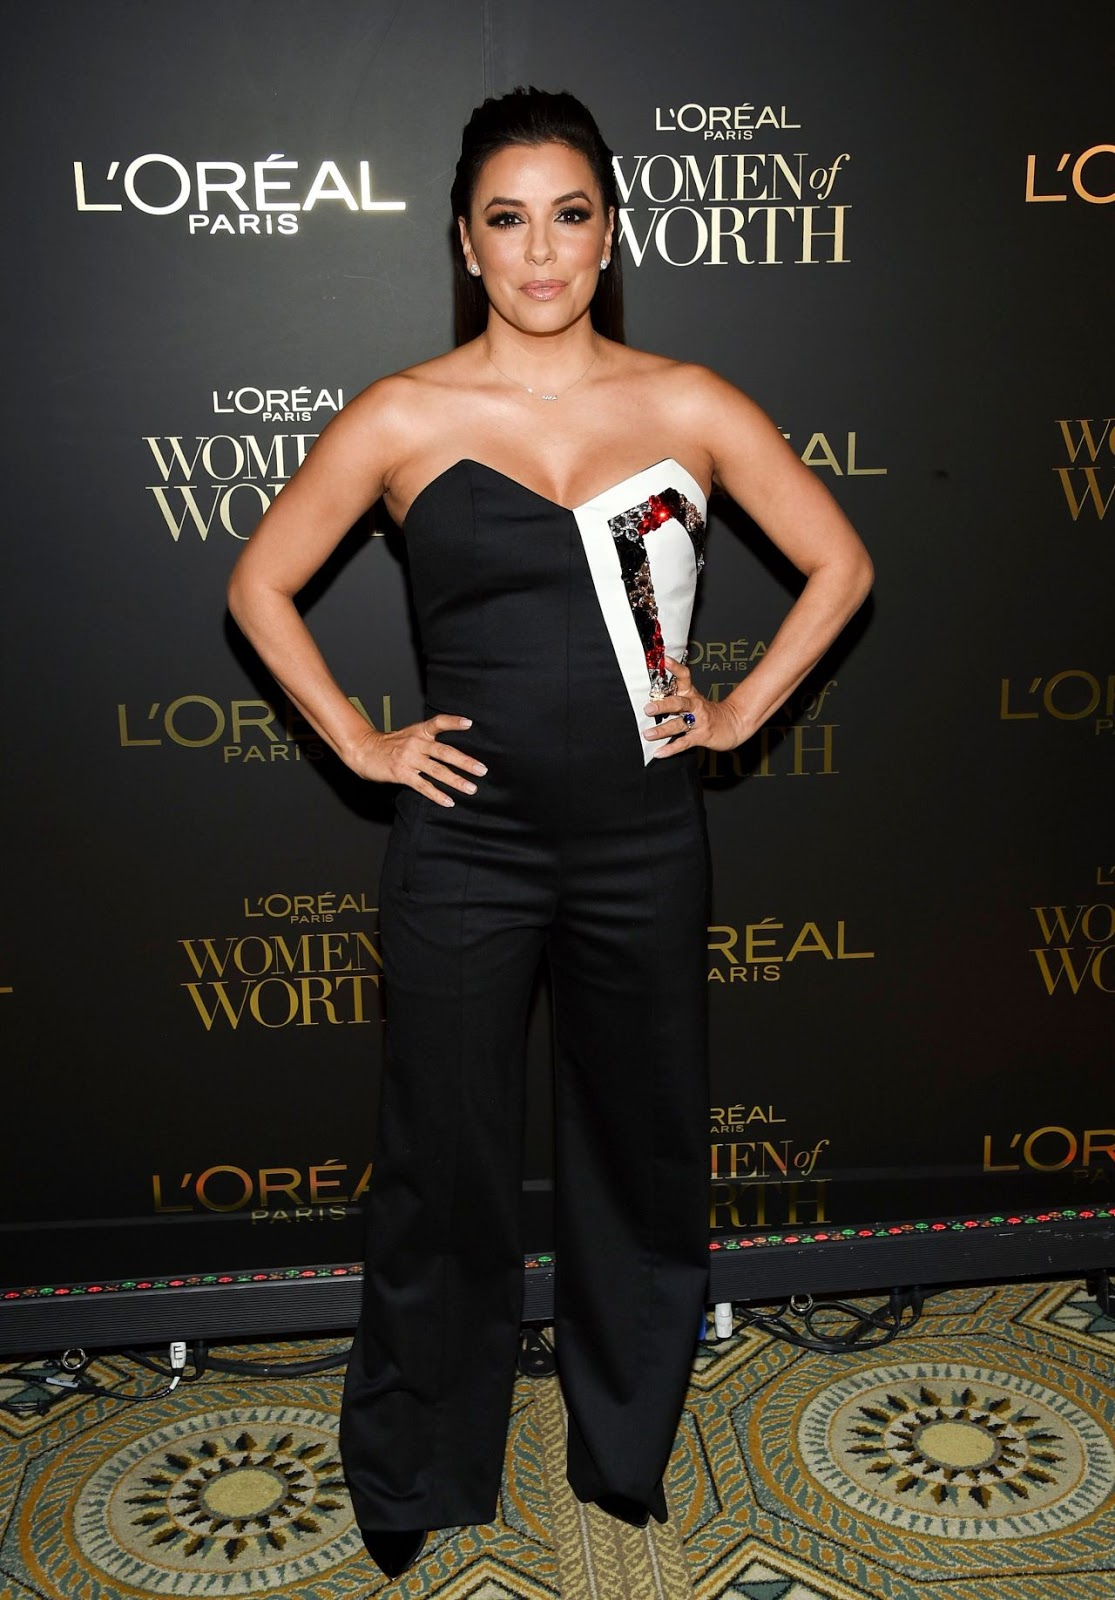 Eva Longoria talks body confidence at the 2018 L'Oreal Women of Worth Awards in NY